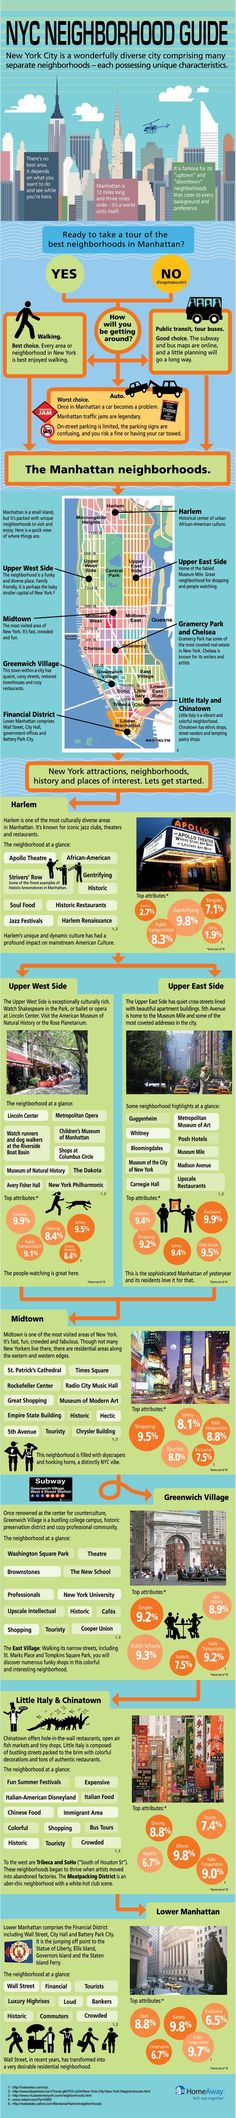 NYC Neighborhood Guide - Visit Like a Local!